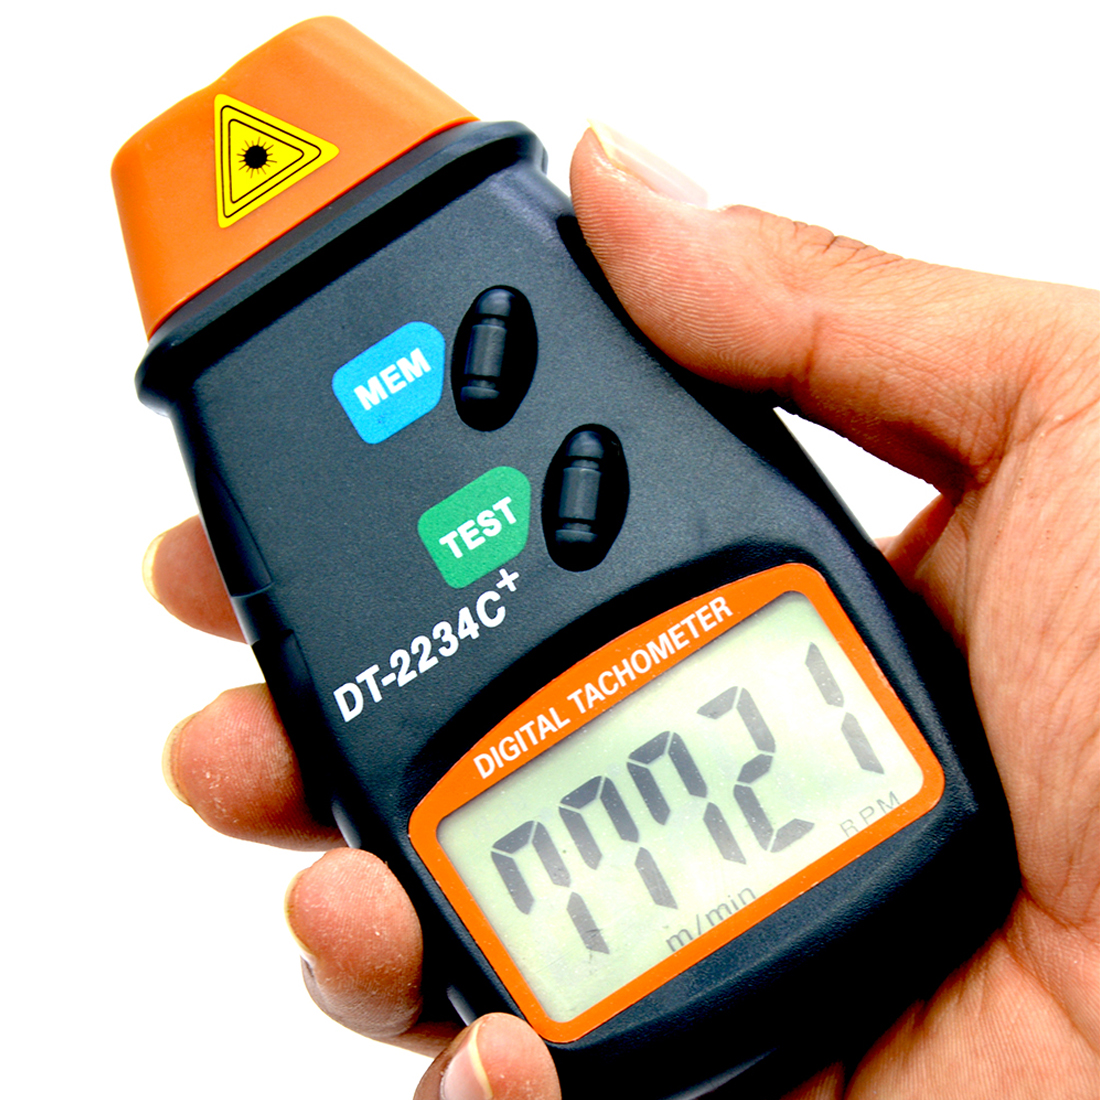 Non Contact Tach Tool Handheld Digital Laser Photo Tachometer Tester RPM Motors DC 9V 2.5RPM -99,999RPM